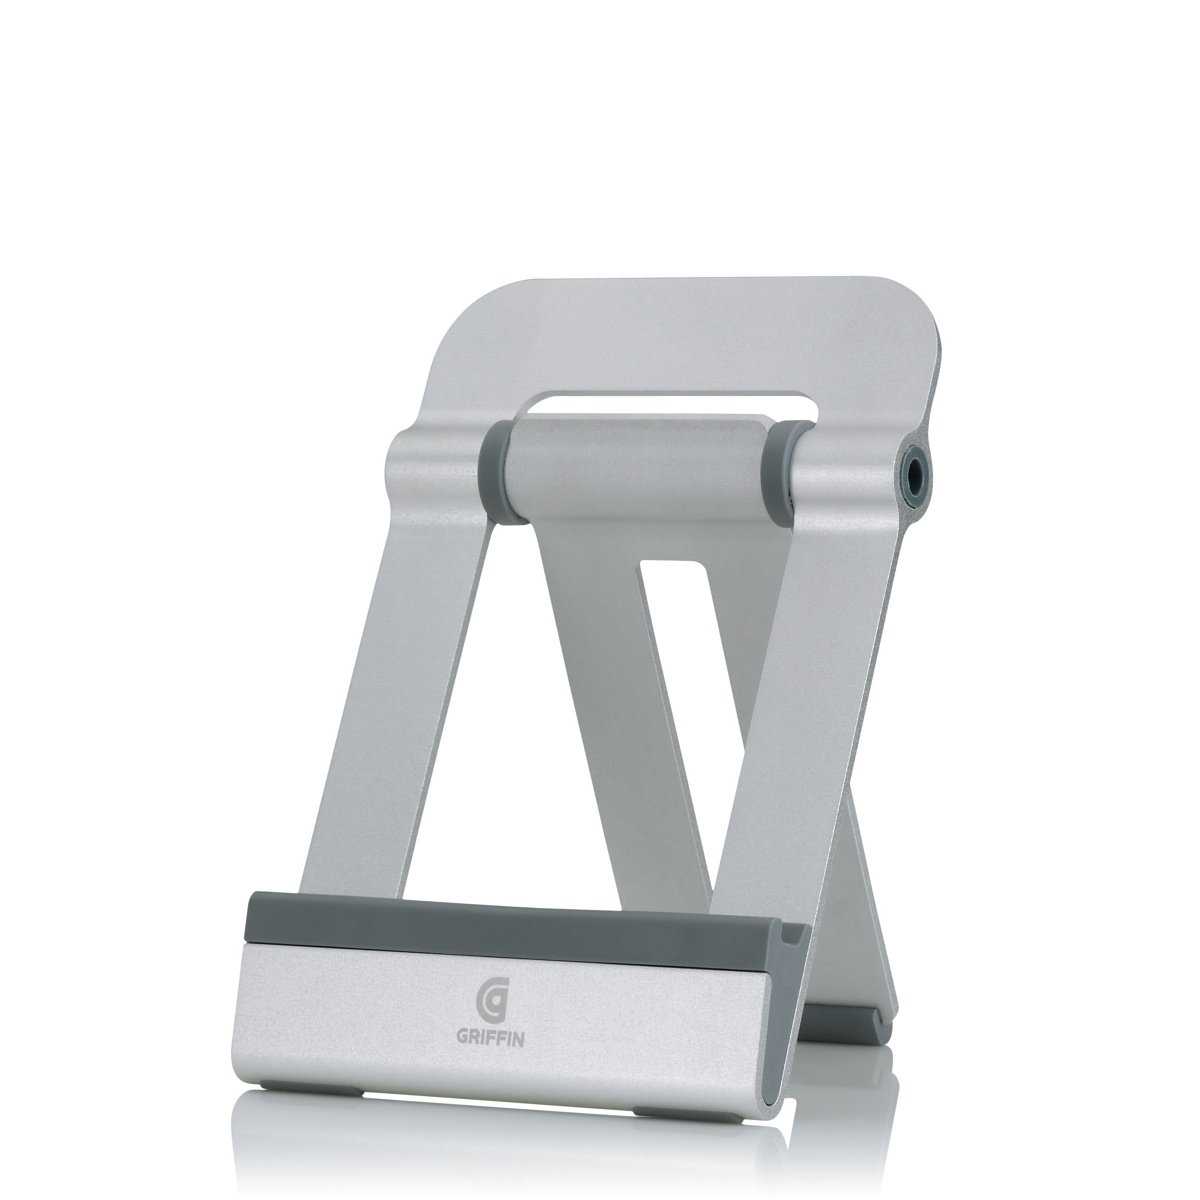 Amazon.com: Griffin A-Frame Tabletop Stand for iPad, ipad2, ipad3 ...